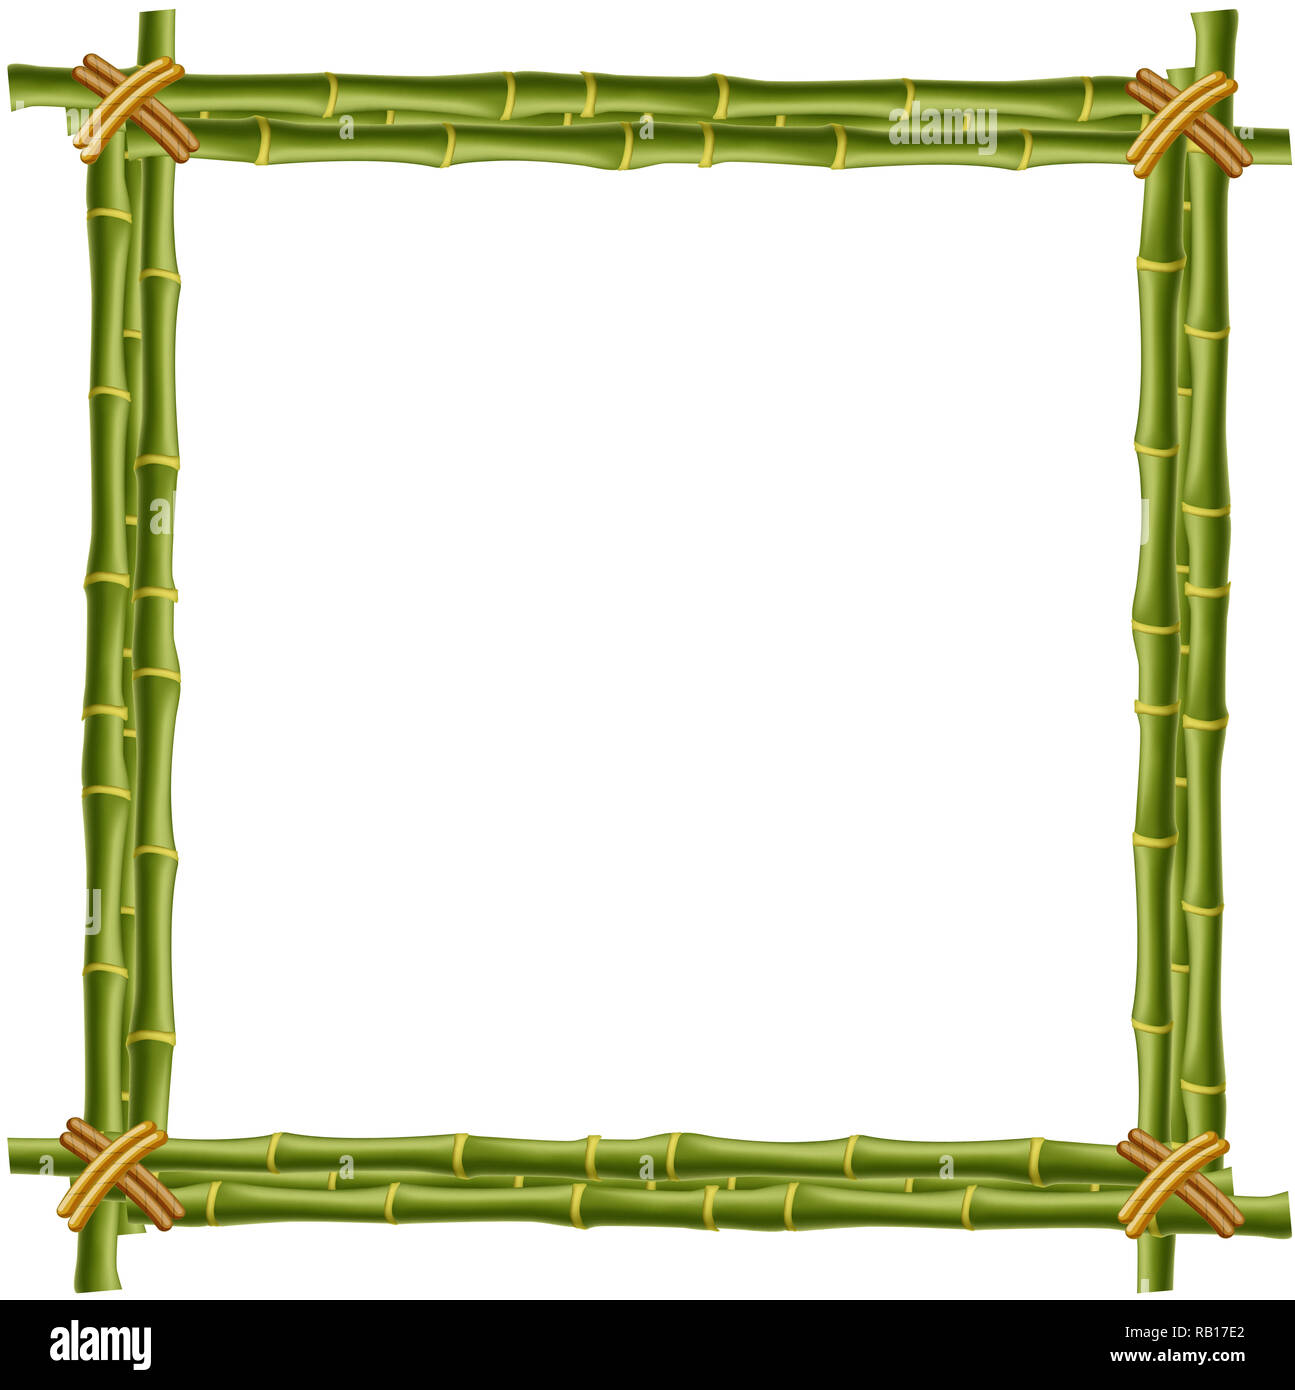 Wooden Frame Made Of Green Bamboo Sticks With Space For Text Or Image Mockup Clip Art Border Template Photo Frame Isolated On White Background Stock Photo Alamy